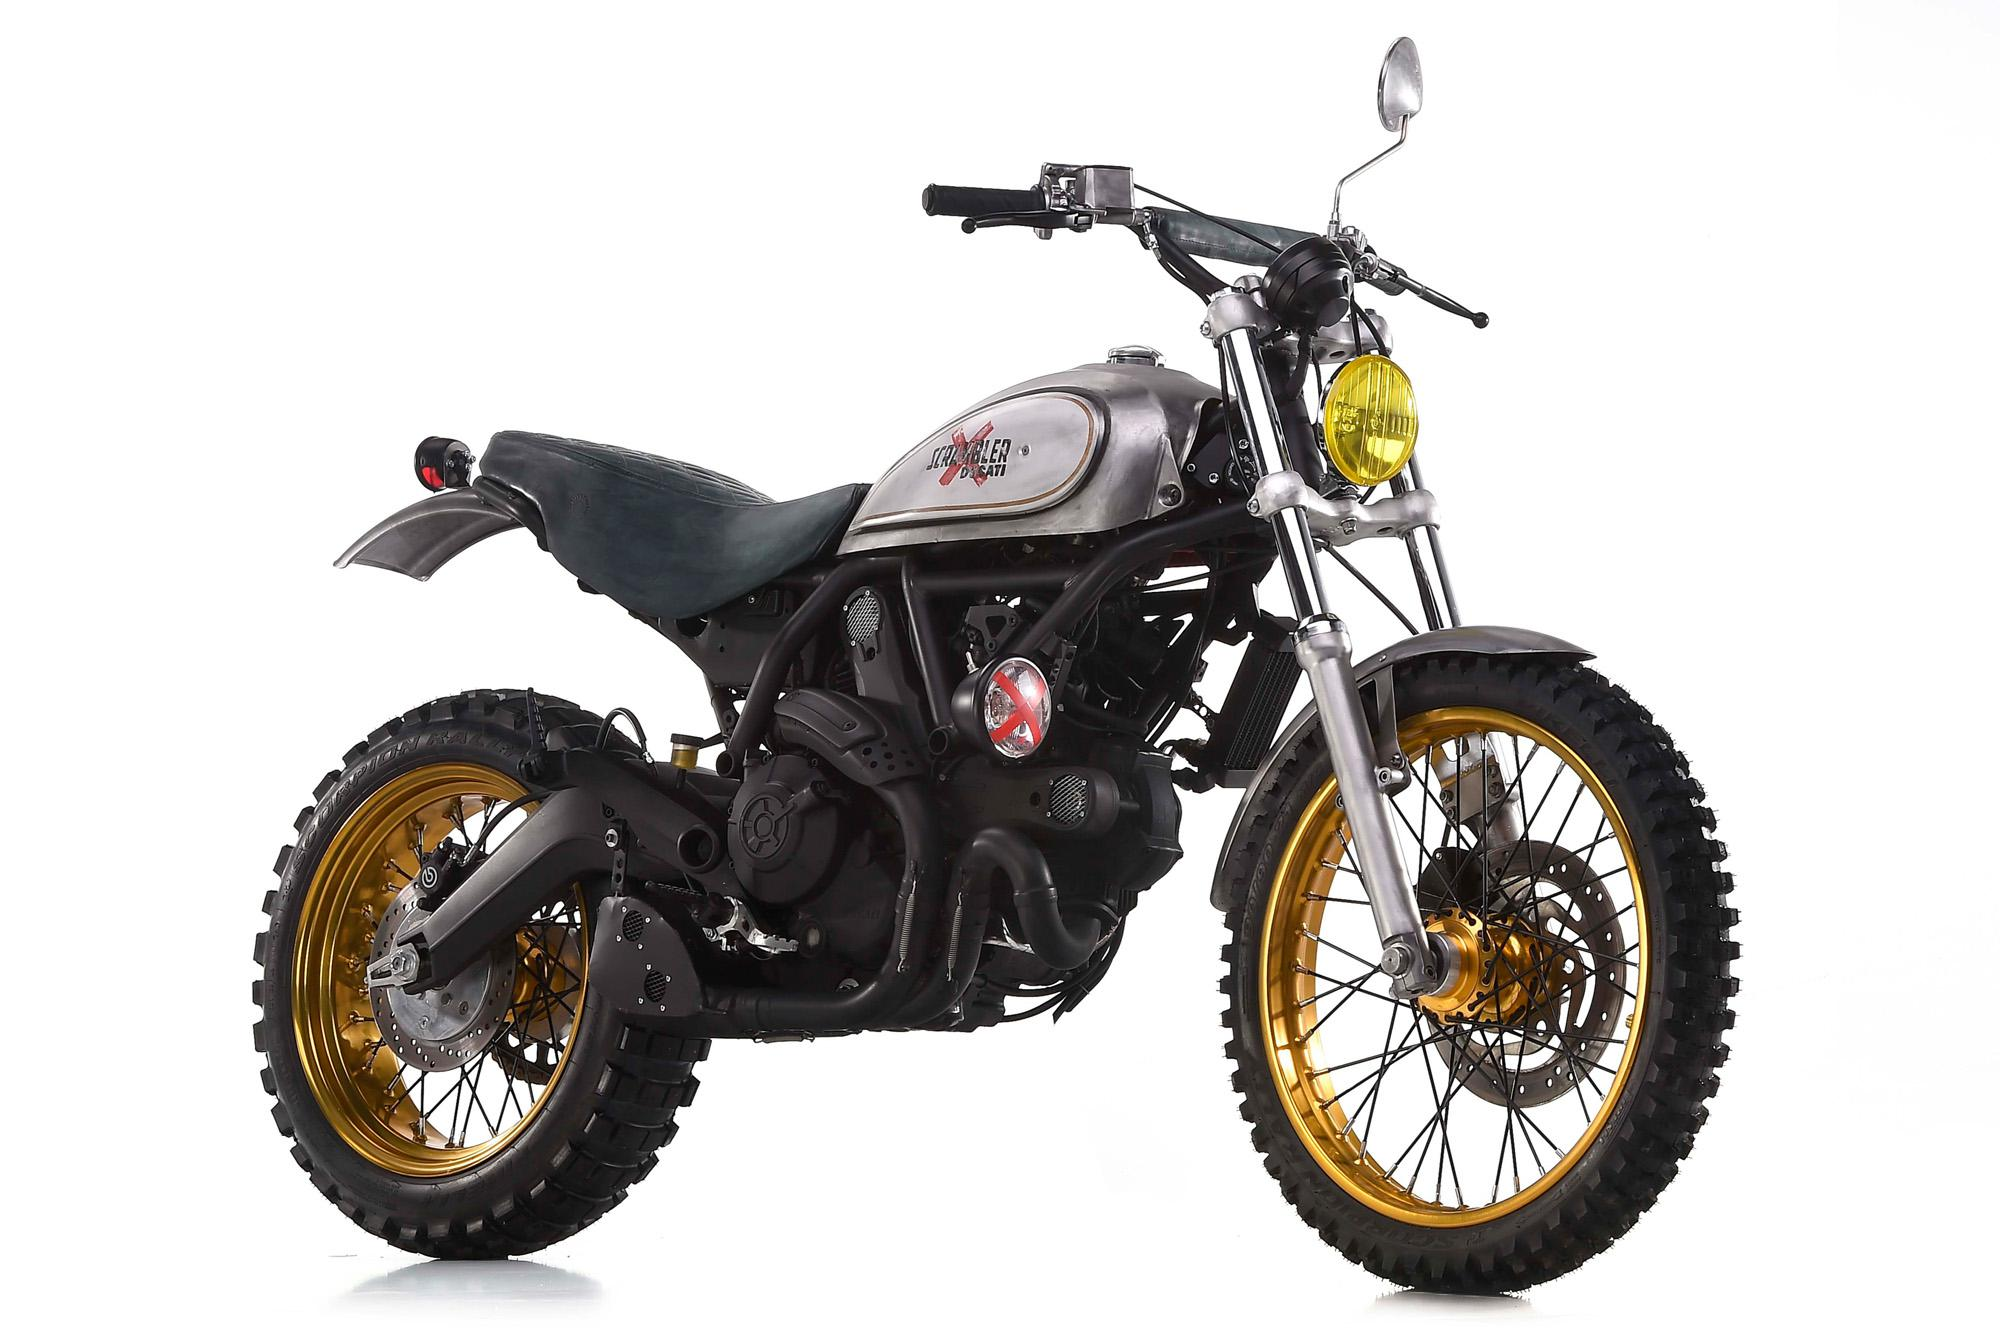 ducati scrambler officine mermaid motorrad fotos. Black Bedroom Furniture Sets. Home Design Ideas